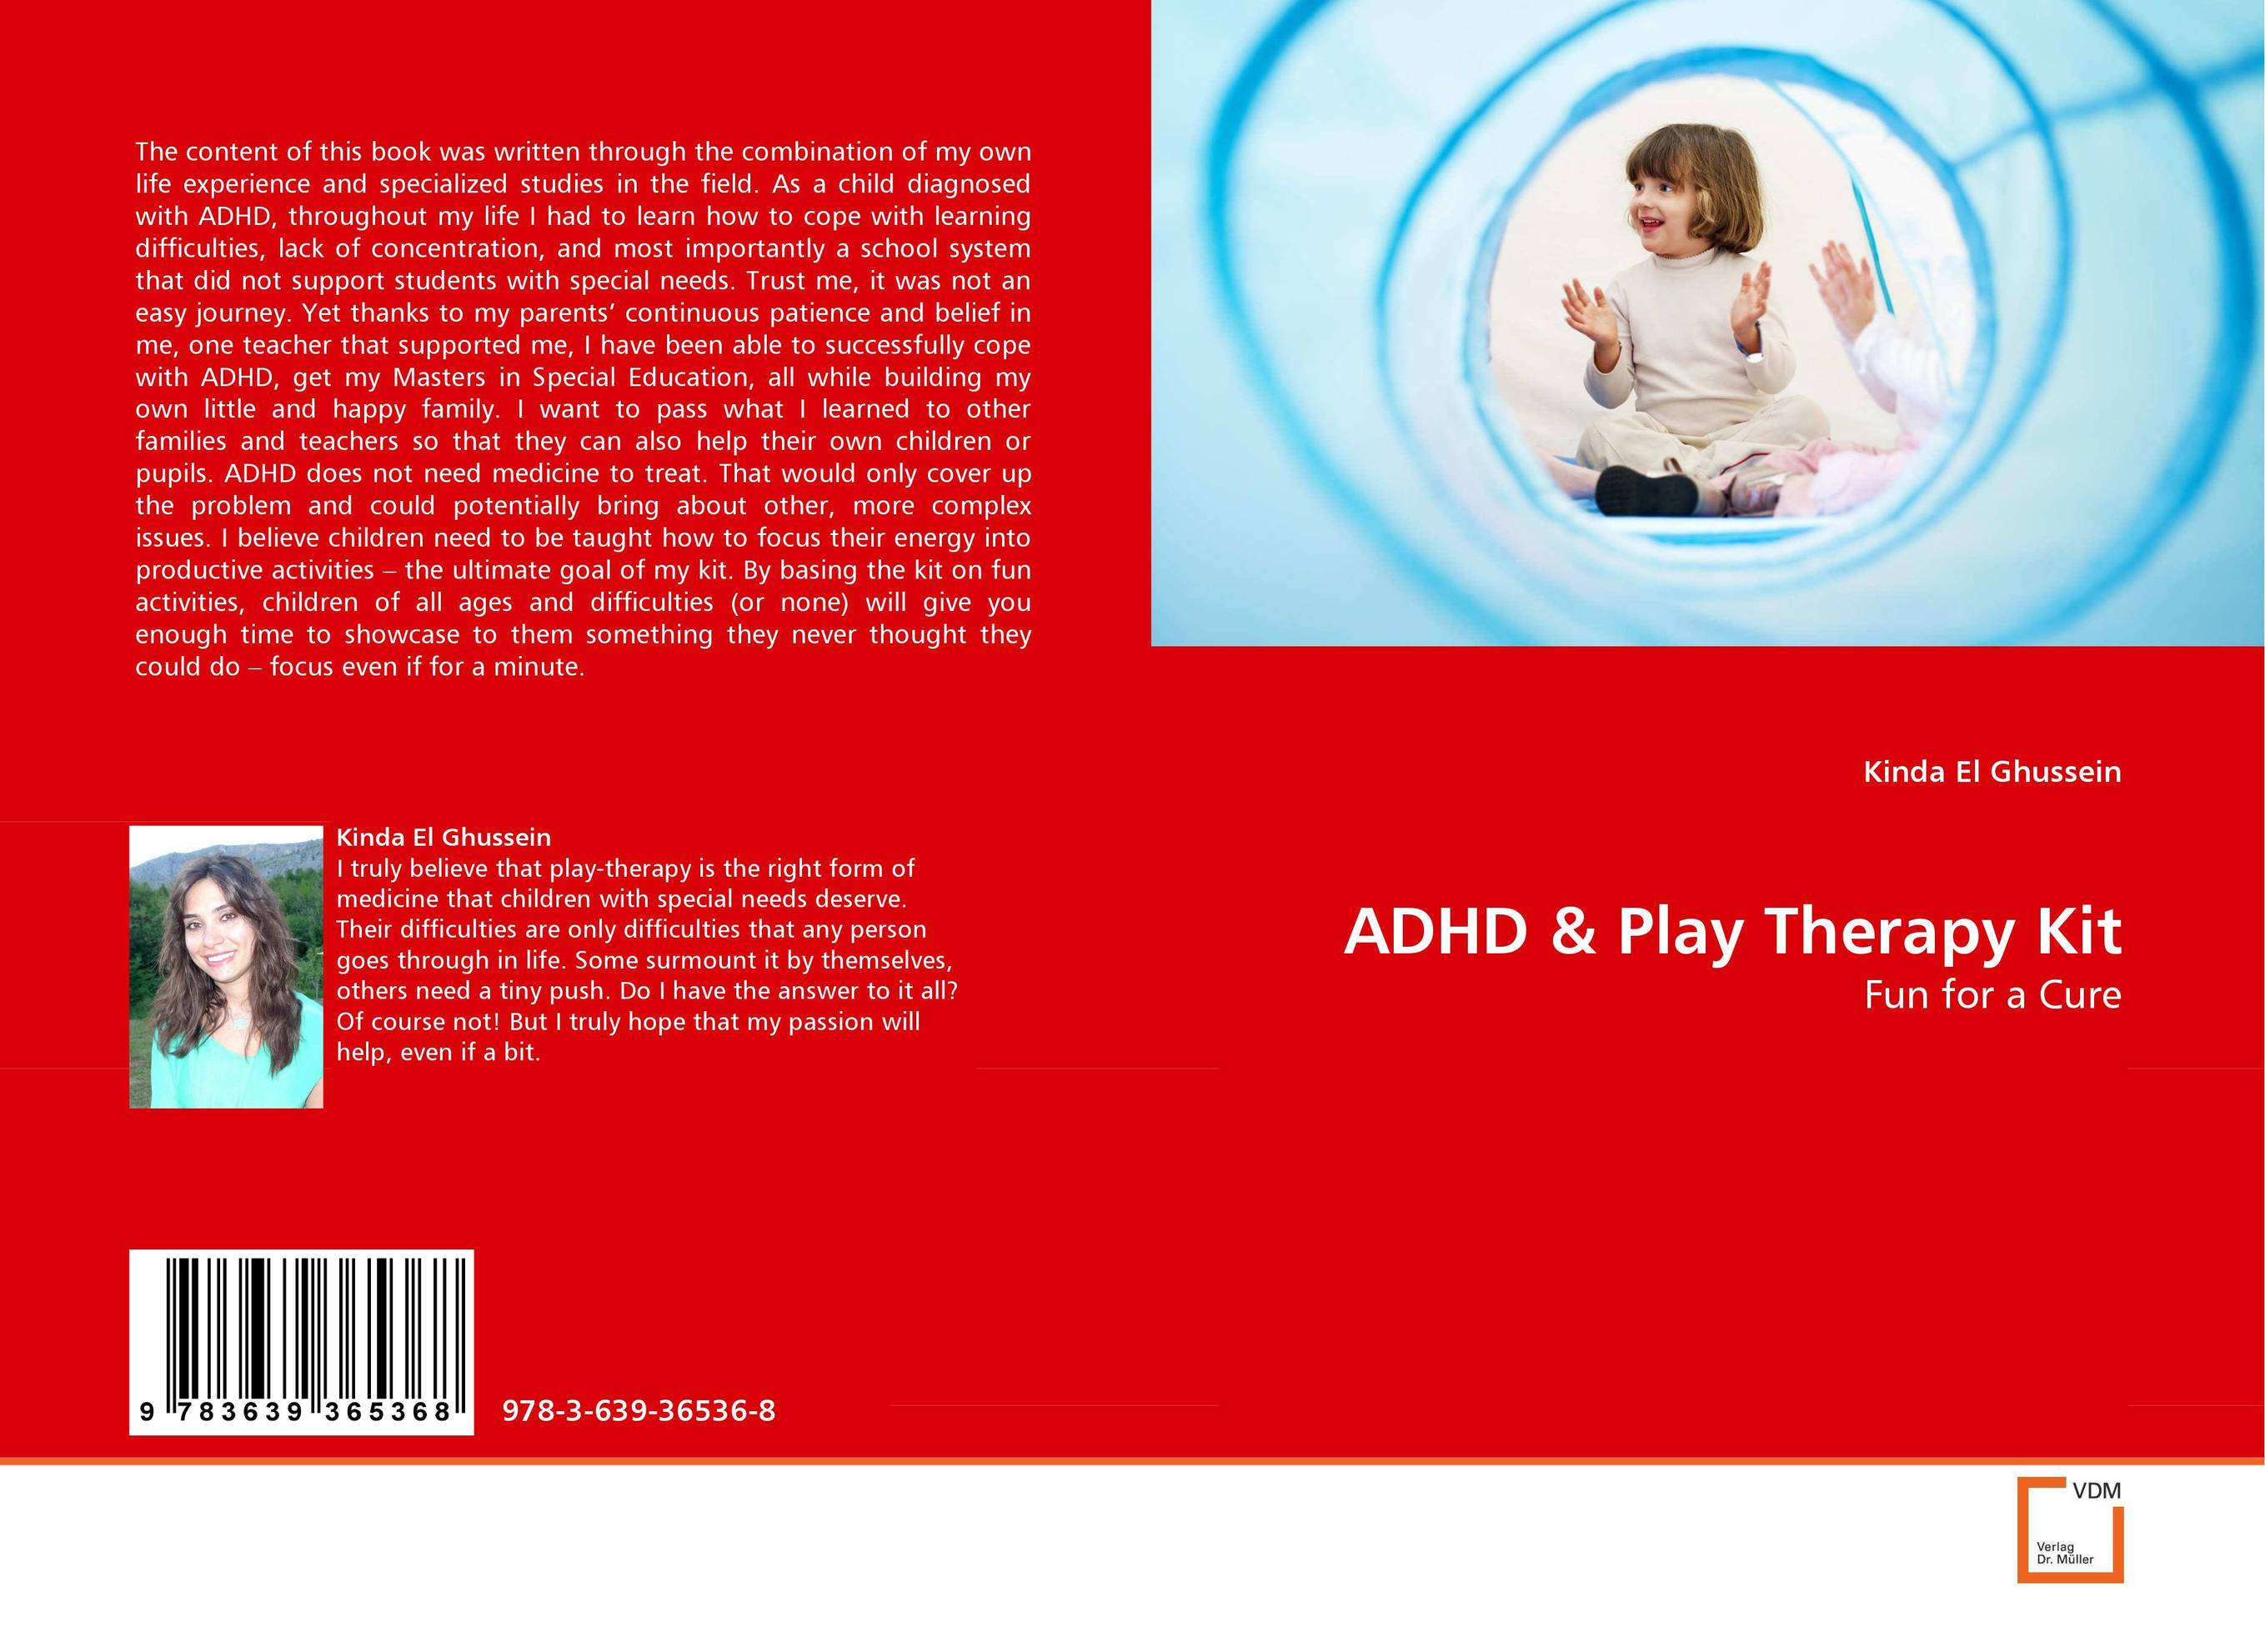 ADHD & Play Therapy Kit on my own